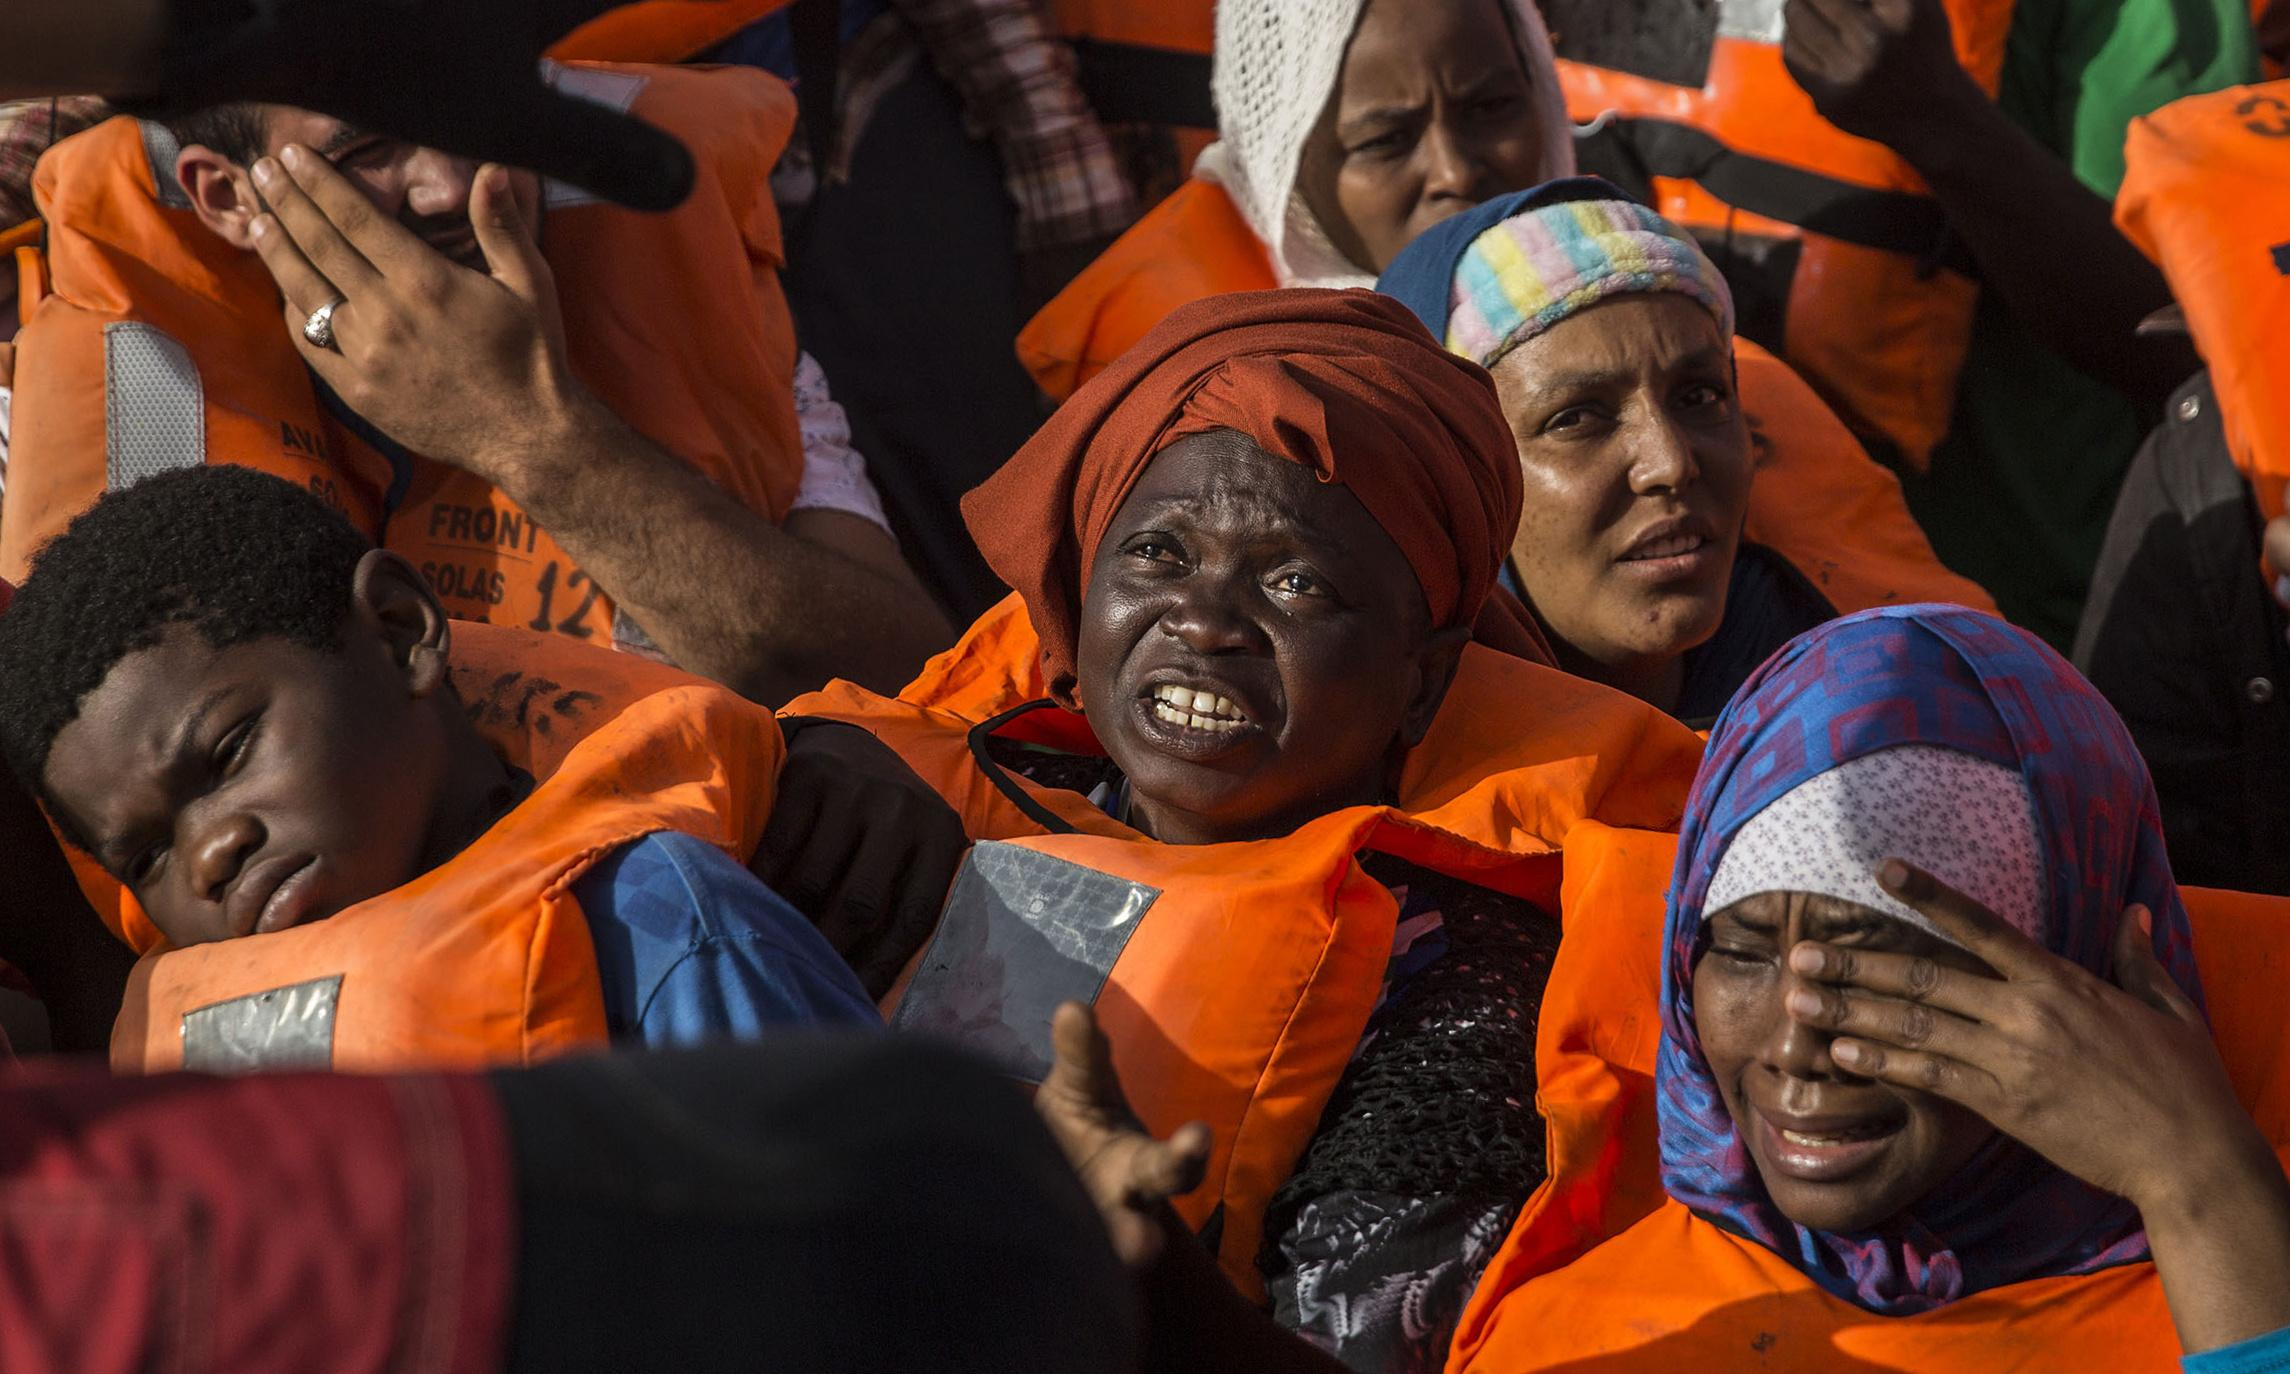 The refugee 'crisis' showed Europe's worst side to the world